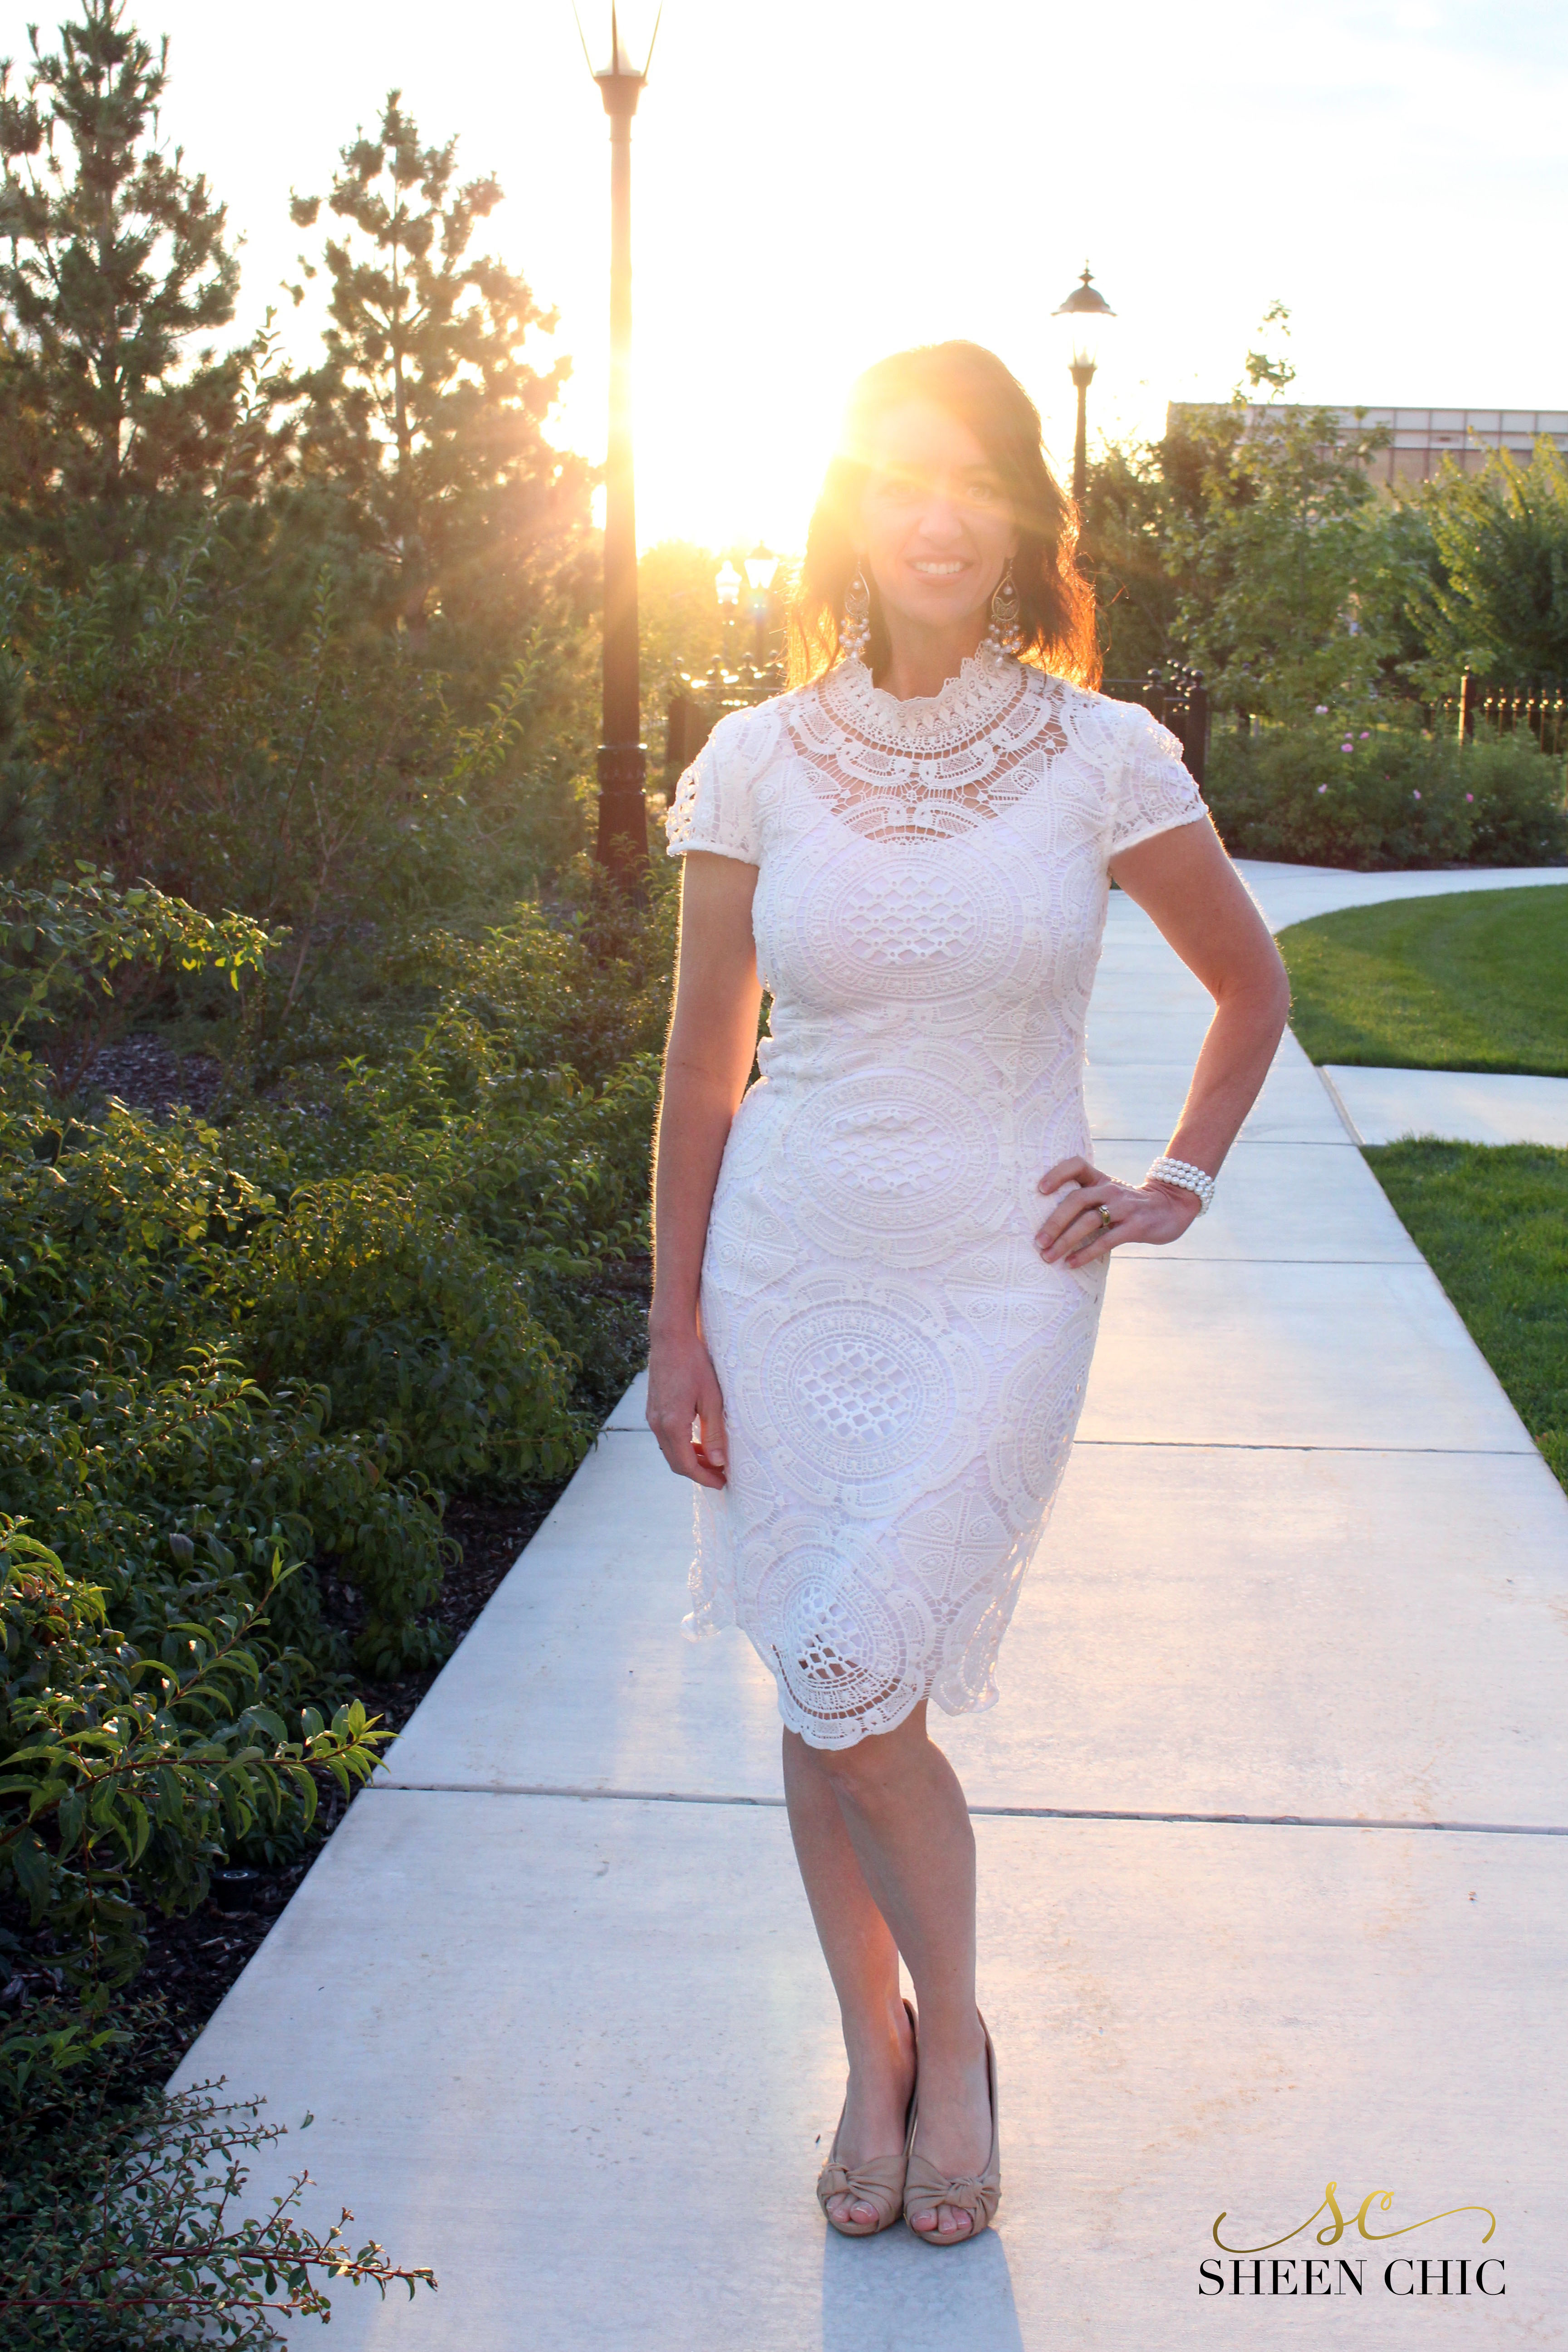 How to line a lace dress